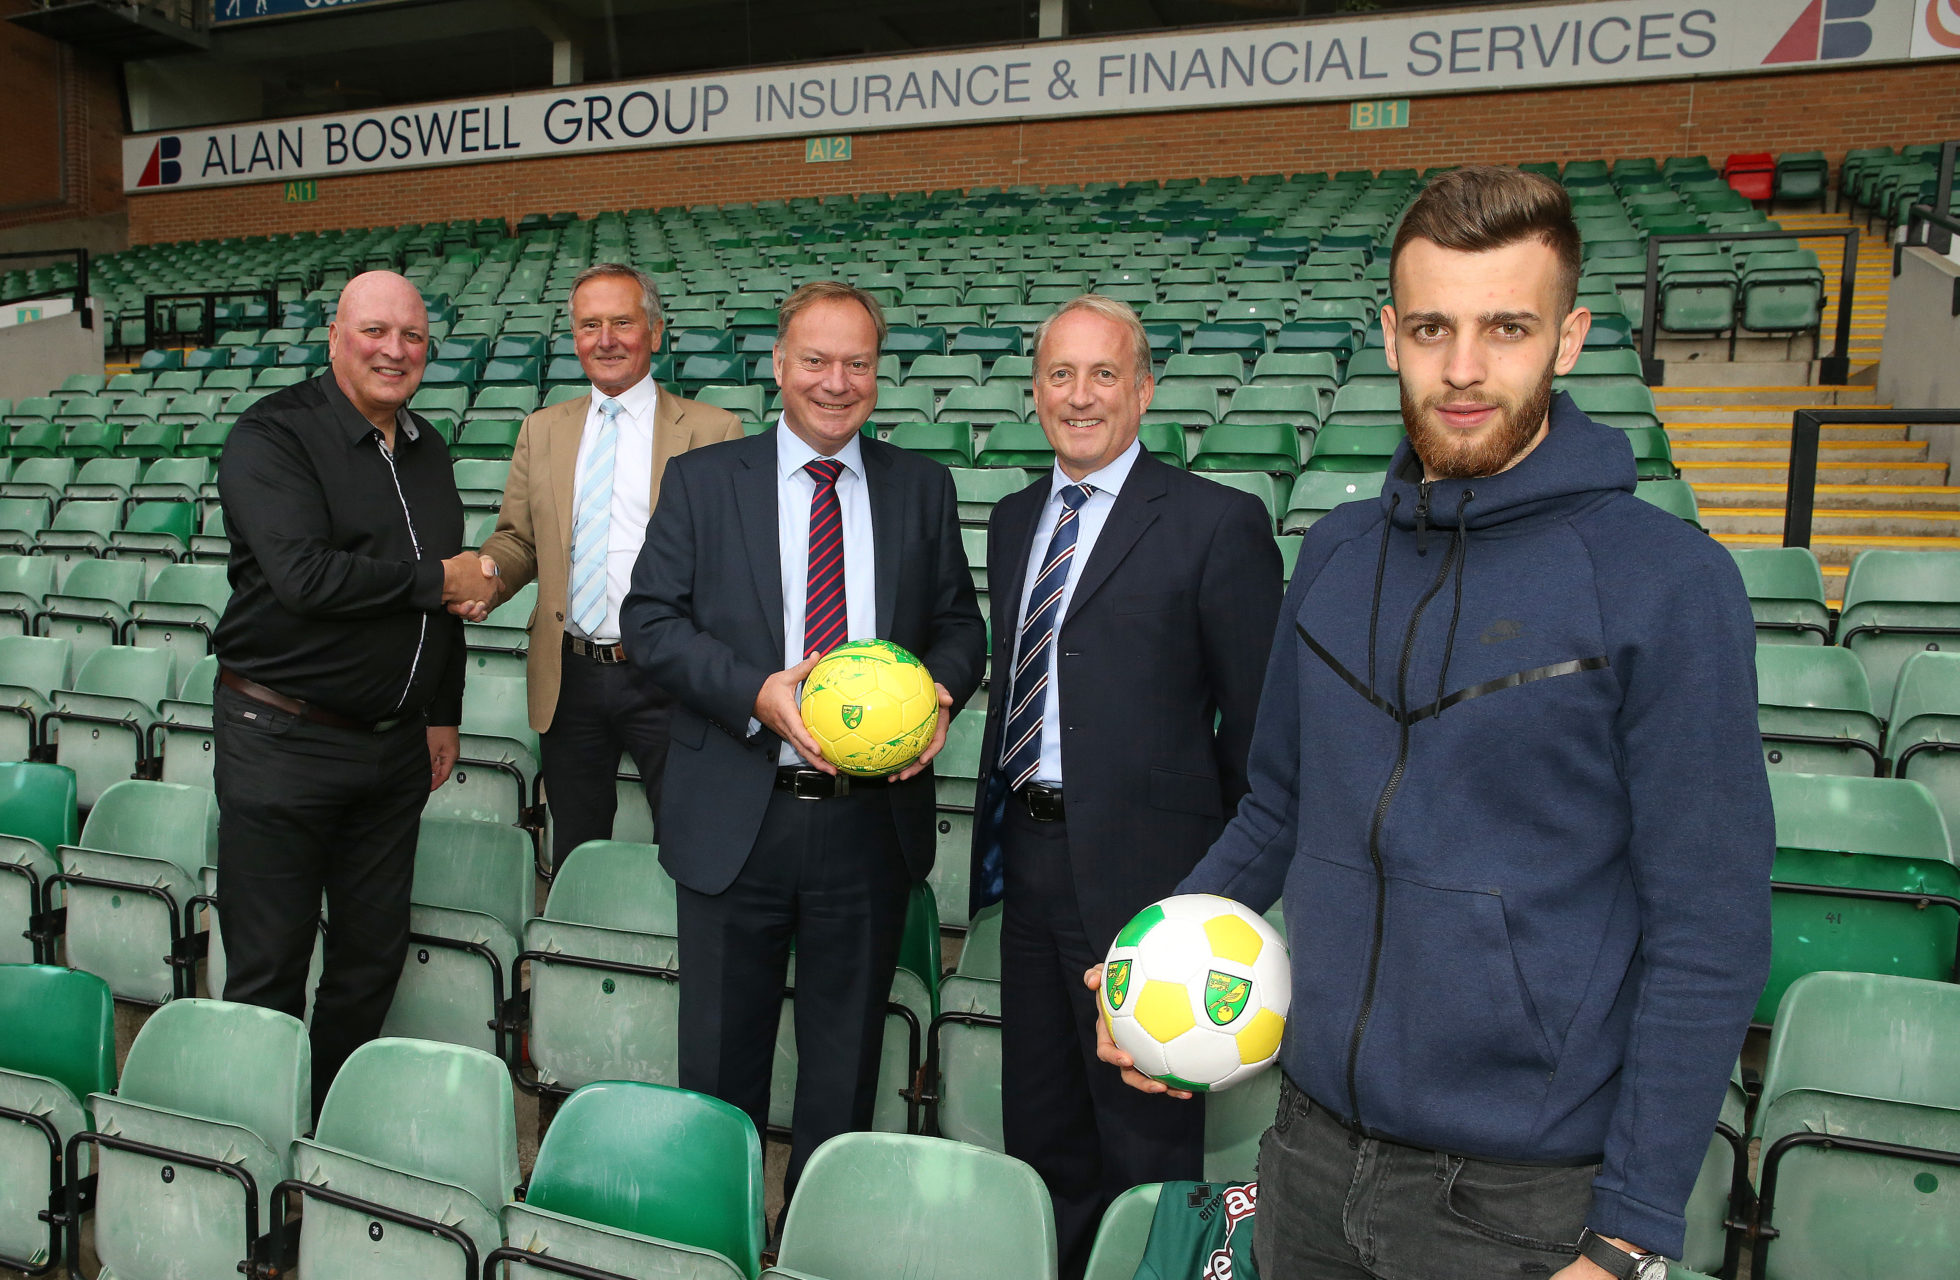 Alan Boswell Group sponsor Norwich City FC